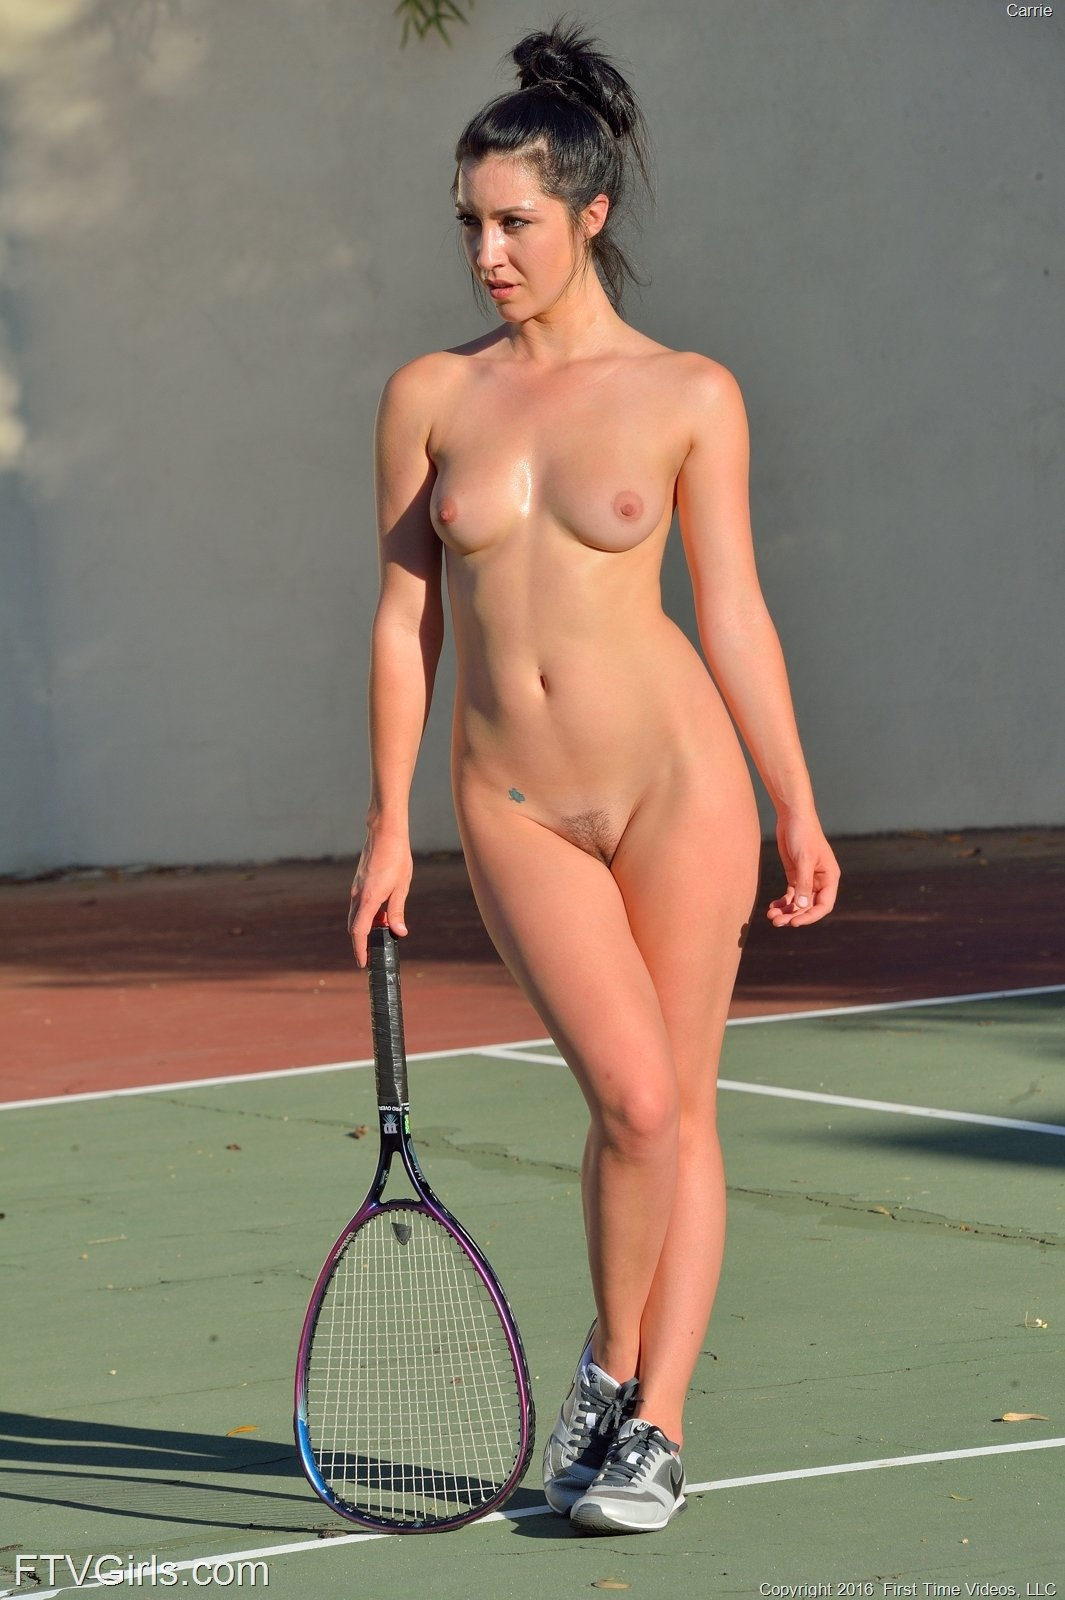 Carrie In Buttalicious Tennis By Ftv Girls 16 Photos -4007